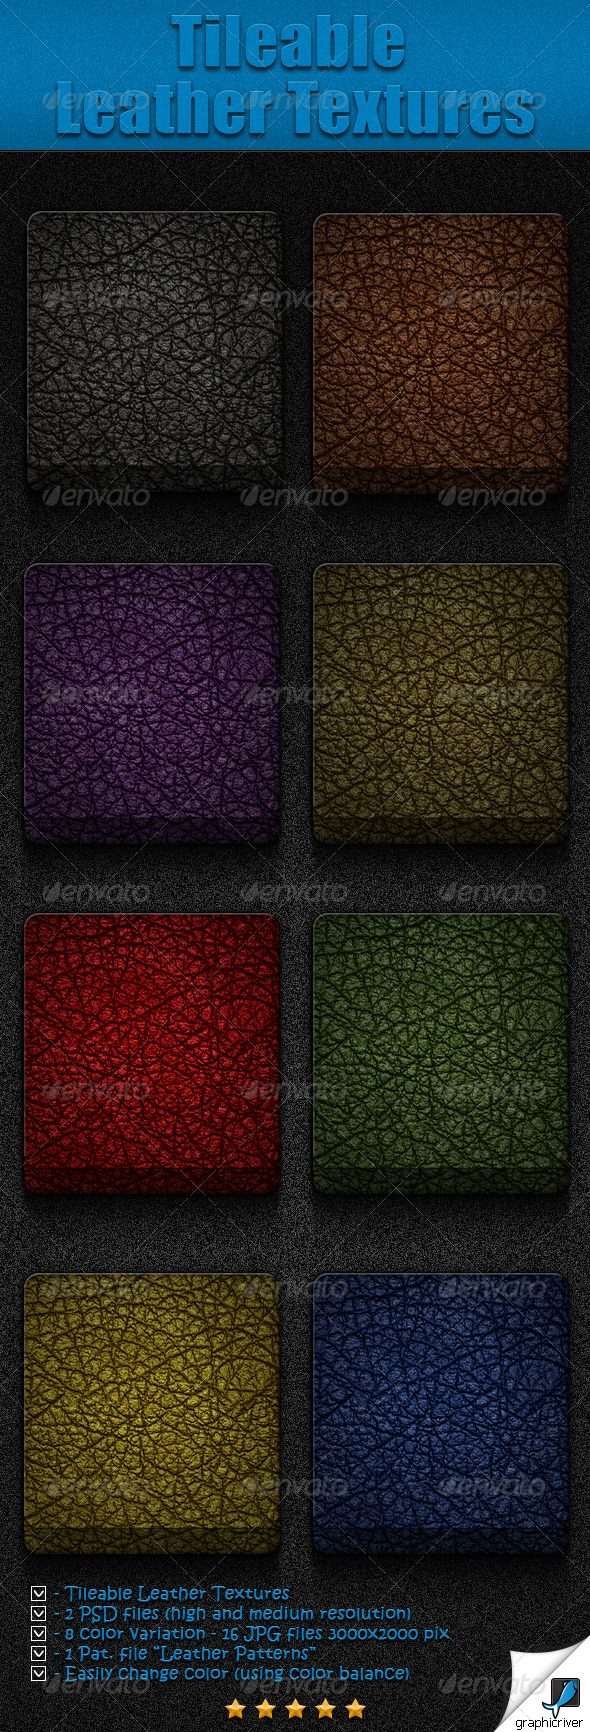 GraphicRiver Tileable Leather Textures 4180178